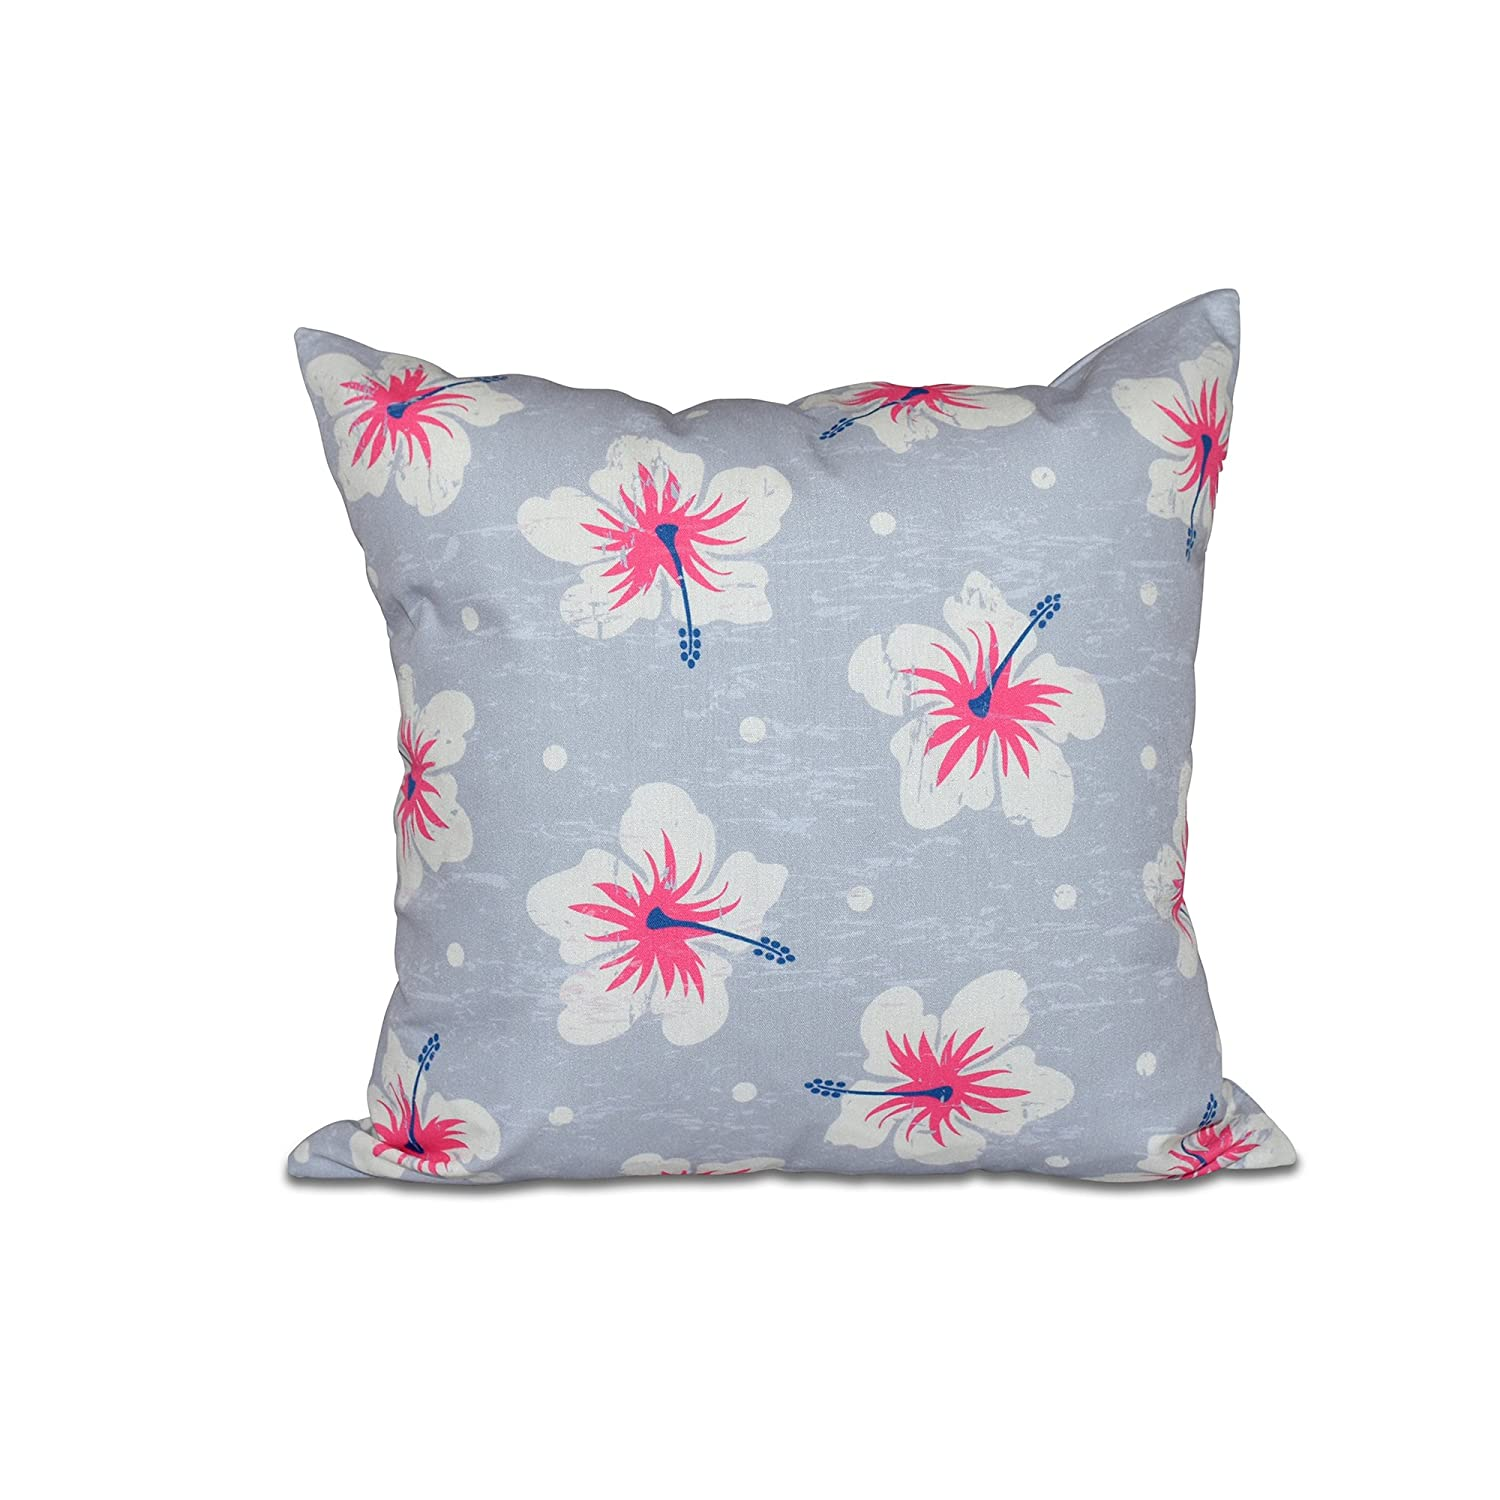 E by design Hibiscus Blooms Floral Print Pillow